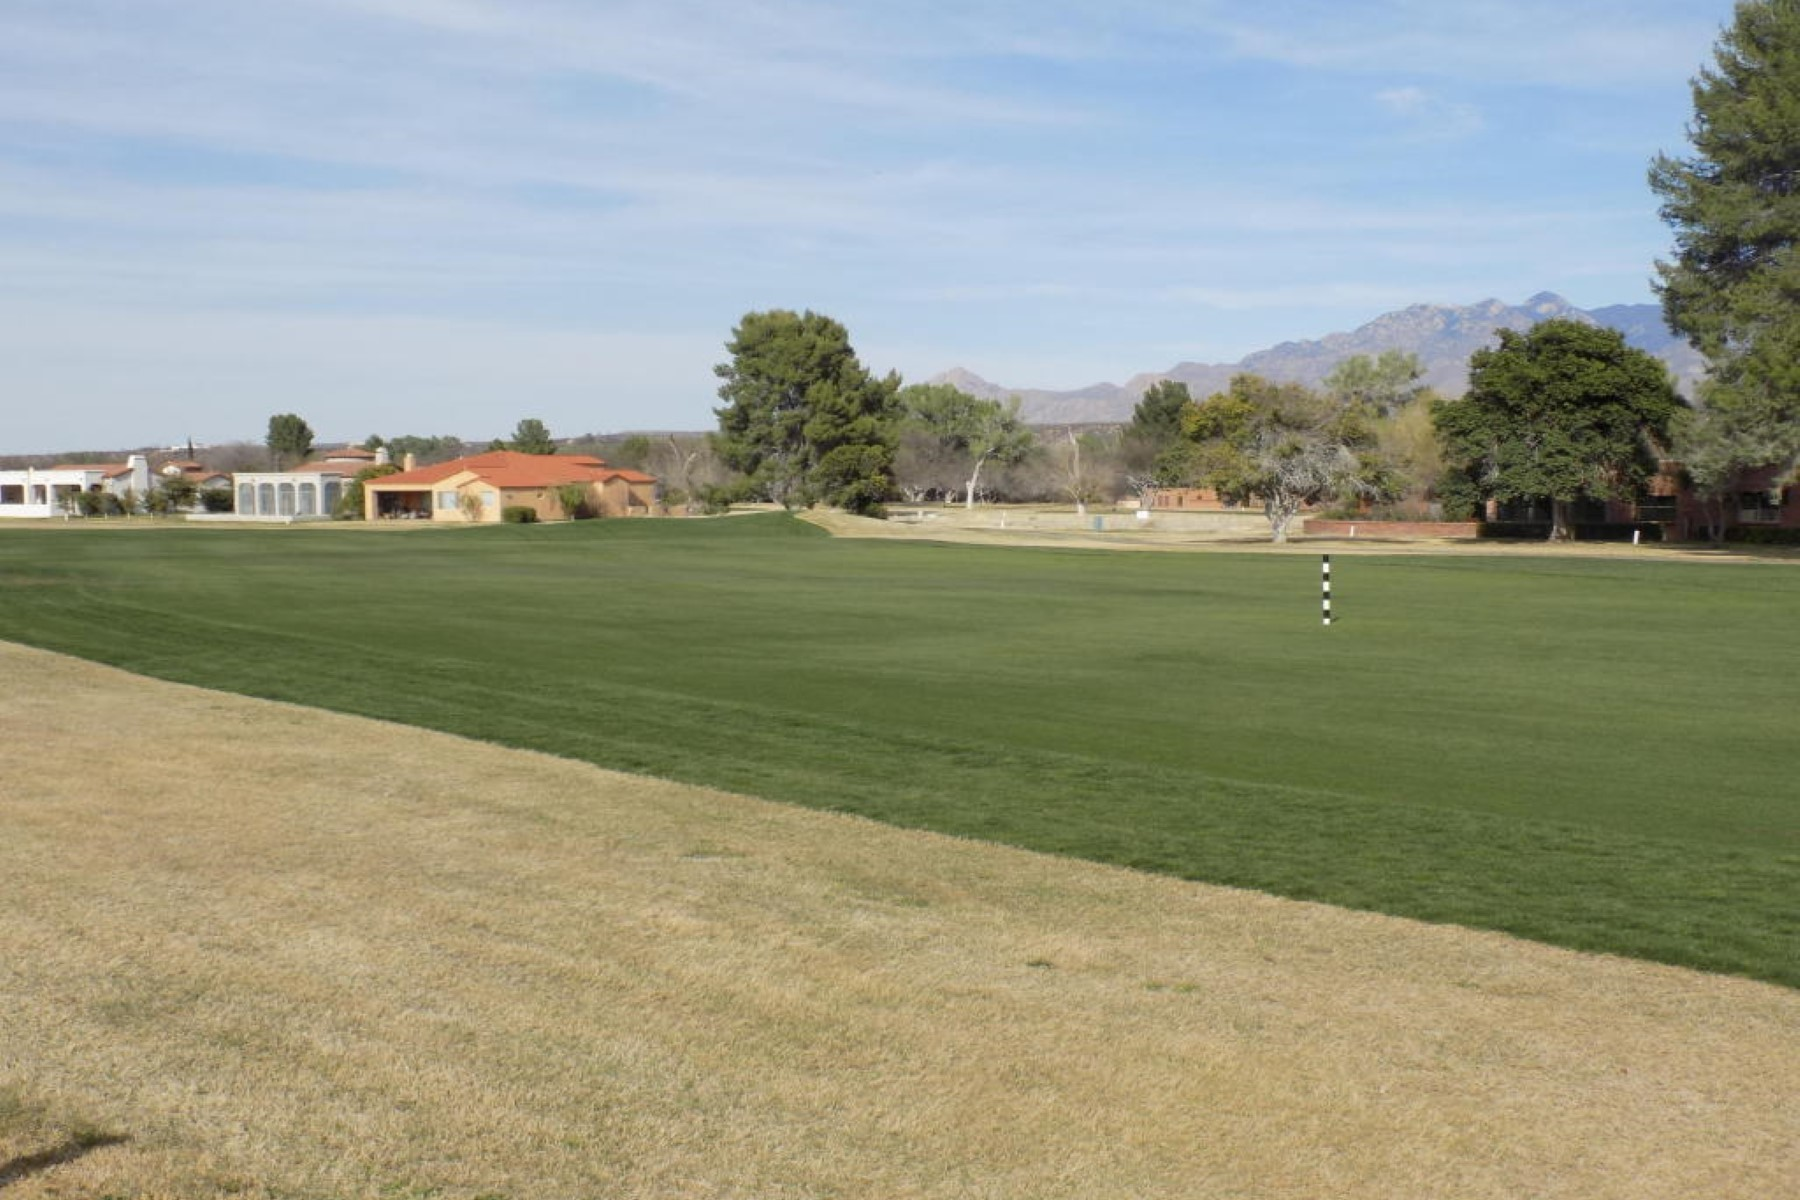 土地 为 销售 在 Golf Course Fairway lots in the Tubac Golf Resort 76 Via Campestre 图巴克, 亚利桑那州, 85646 美国